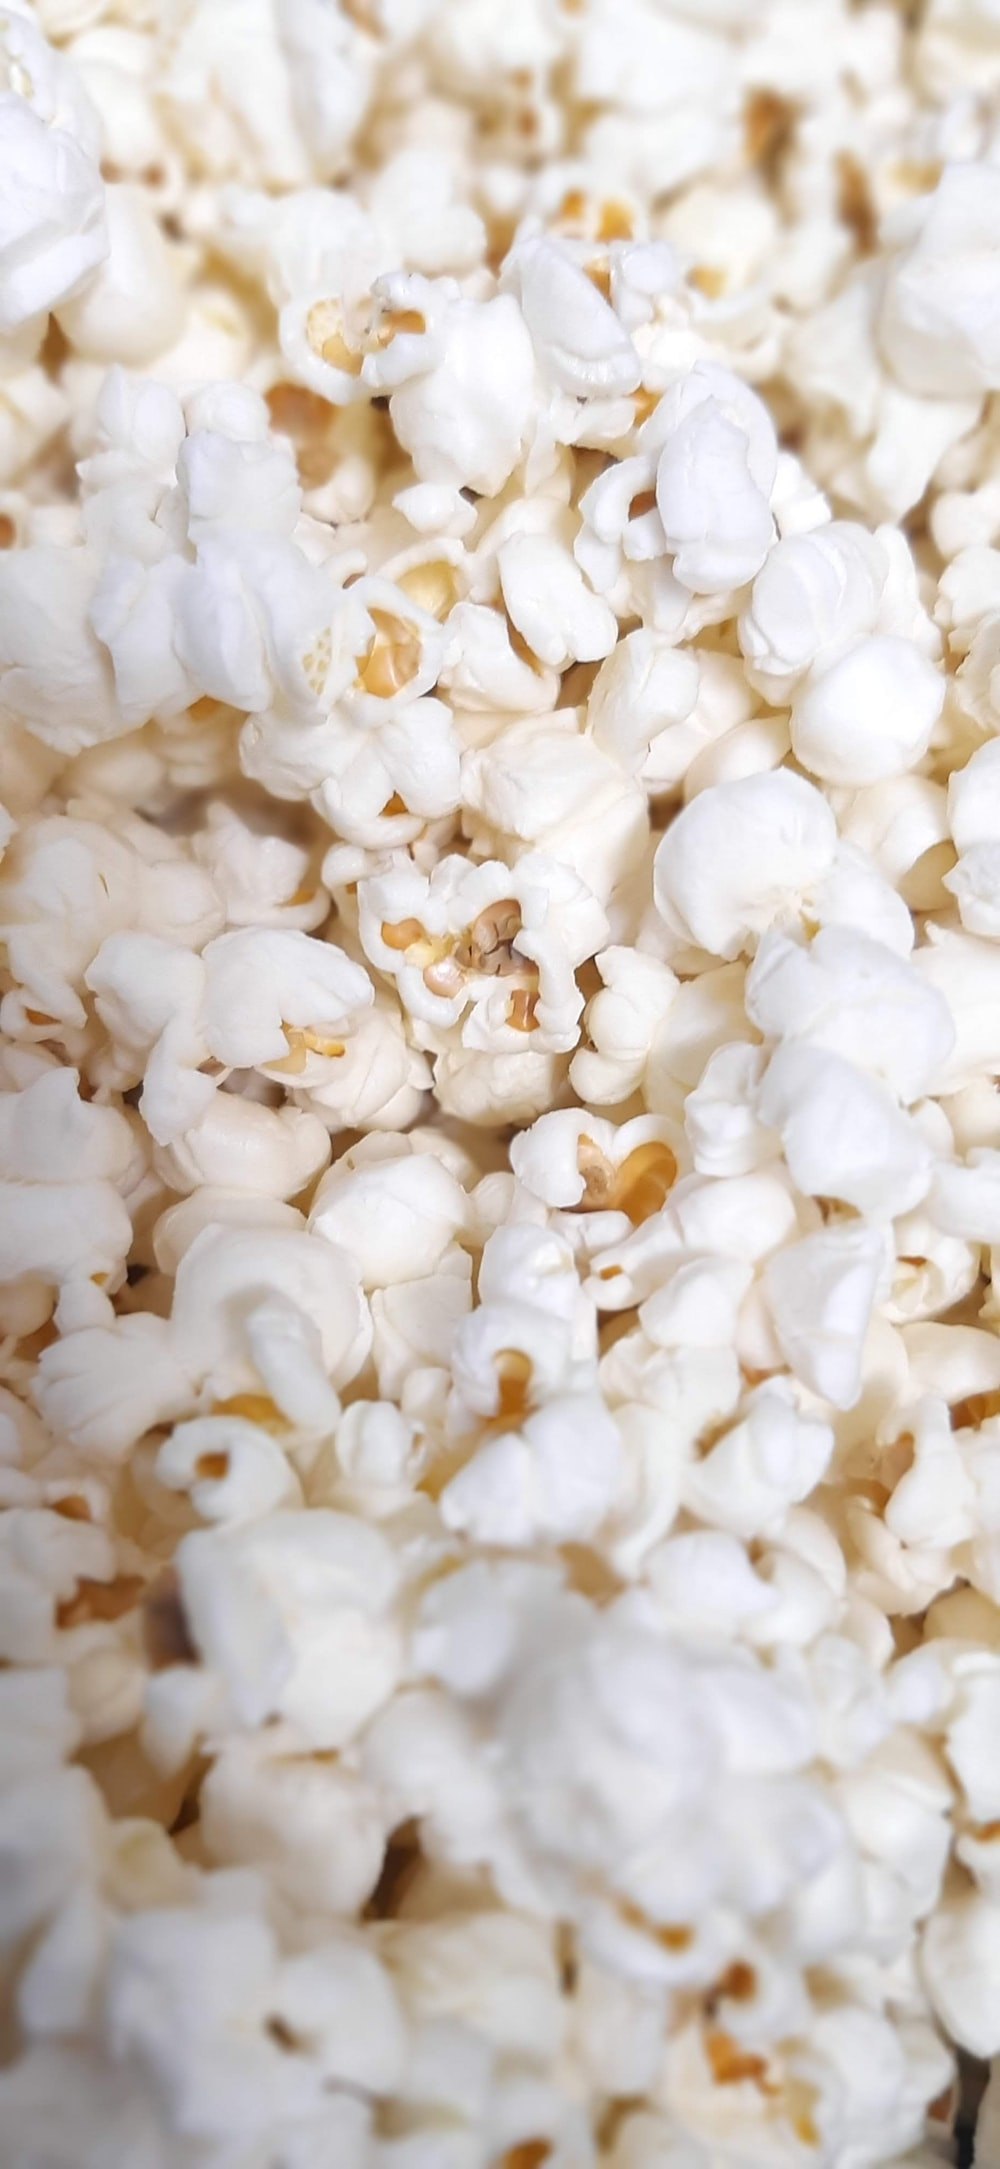 white popcorn in close up photography